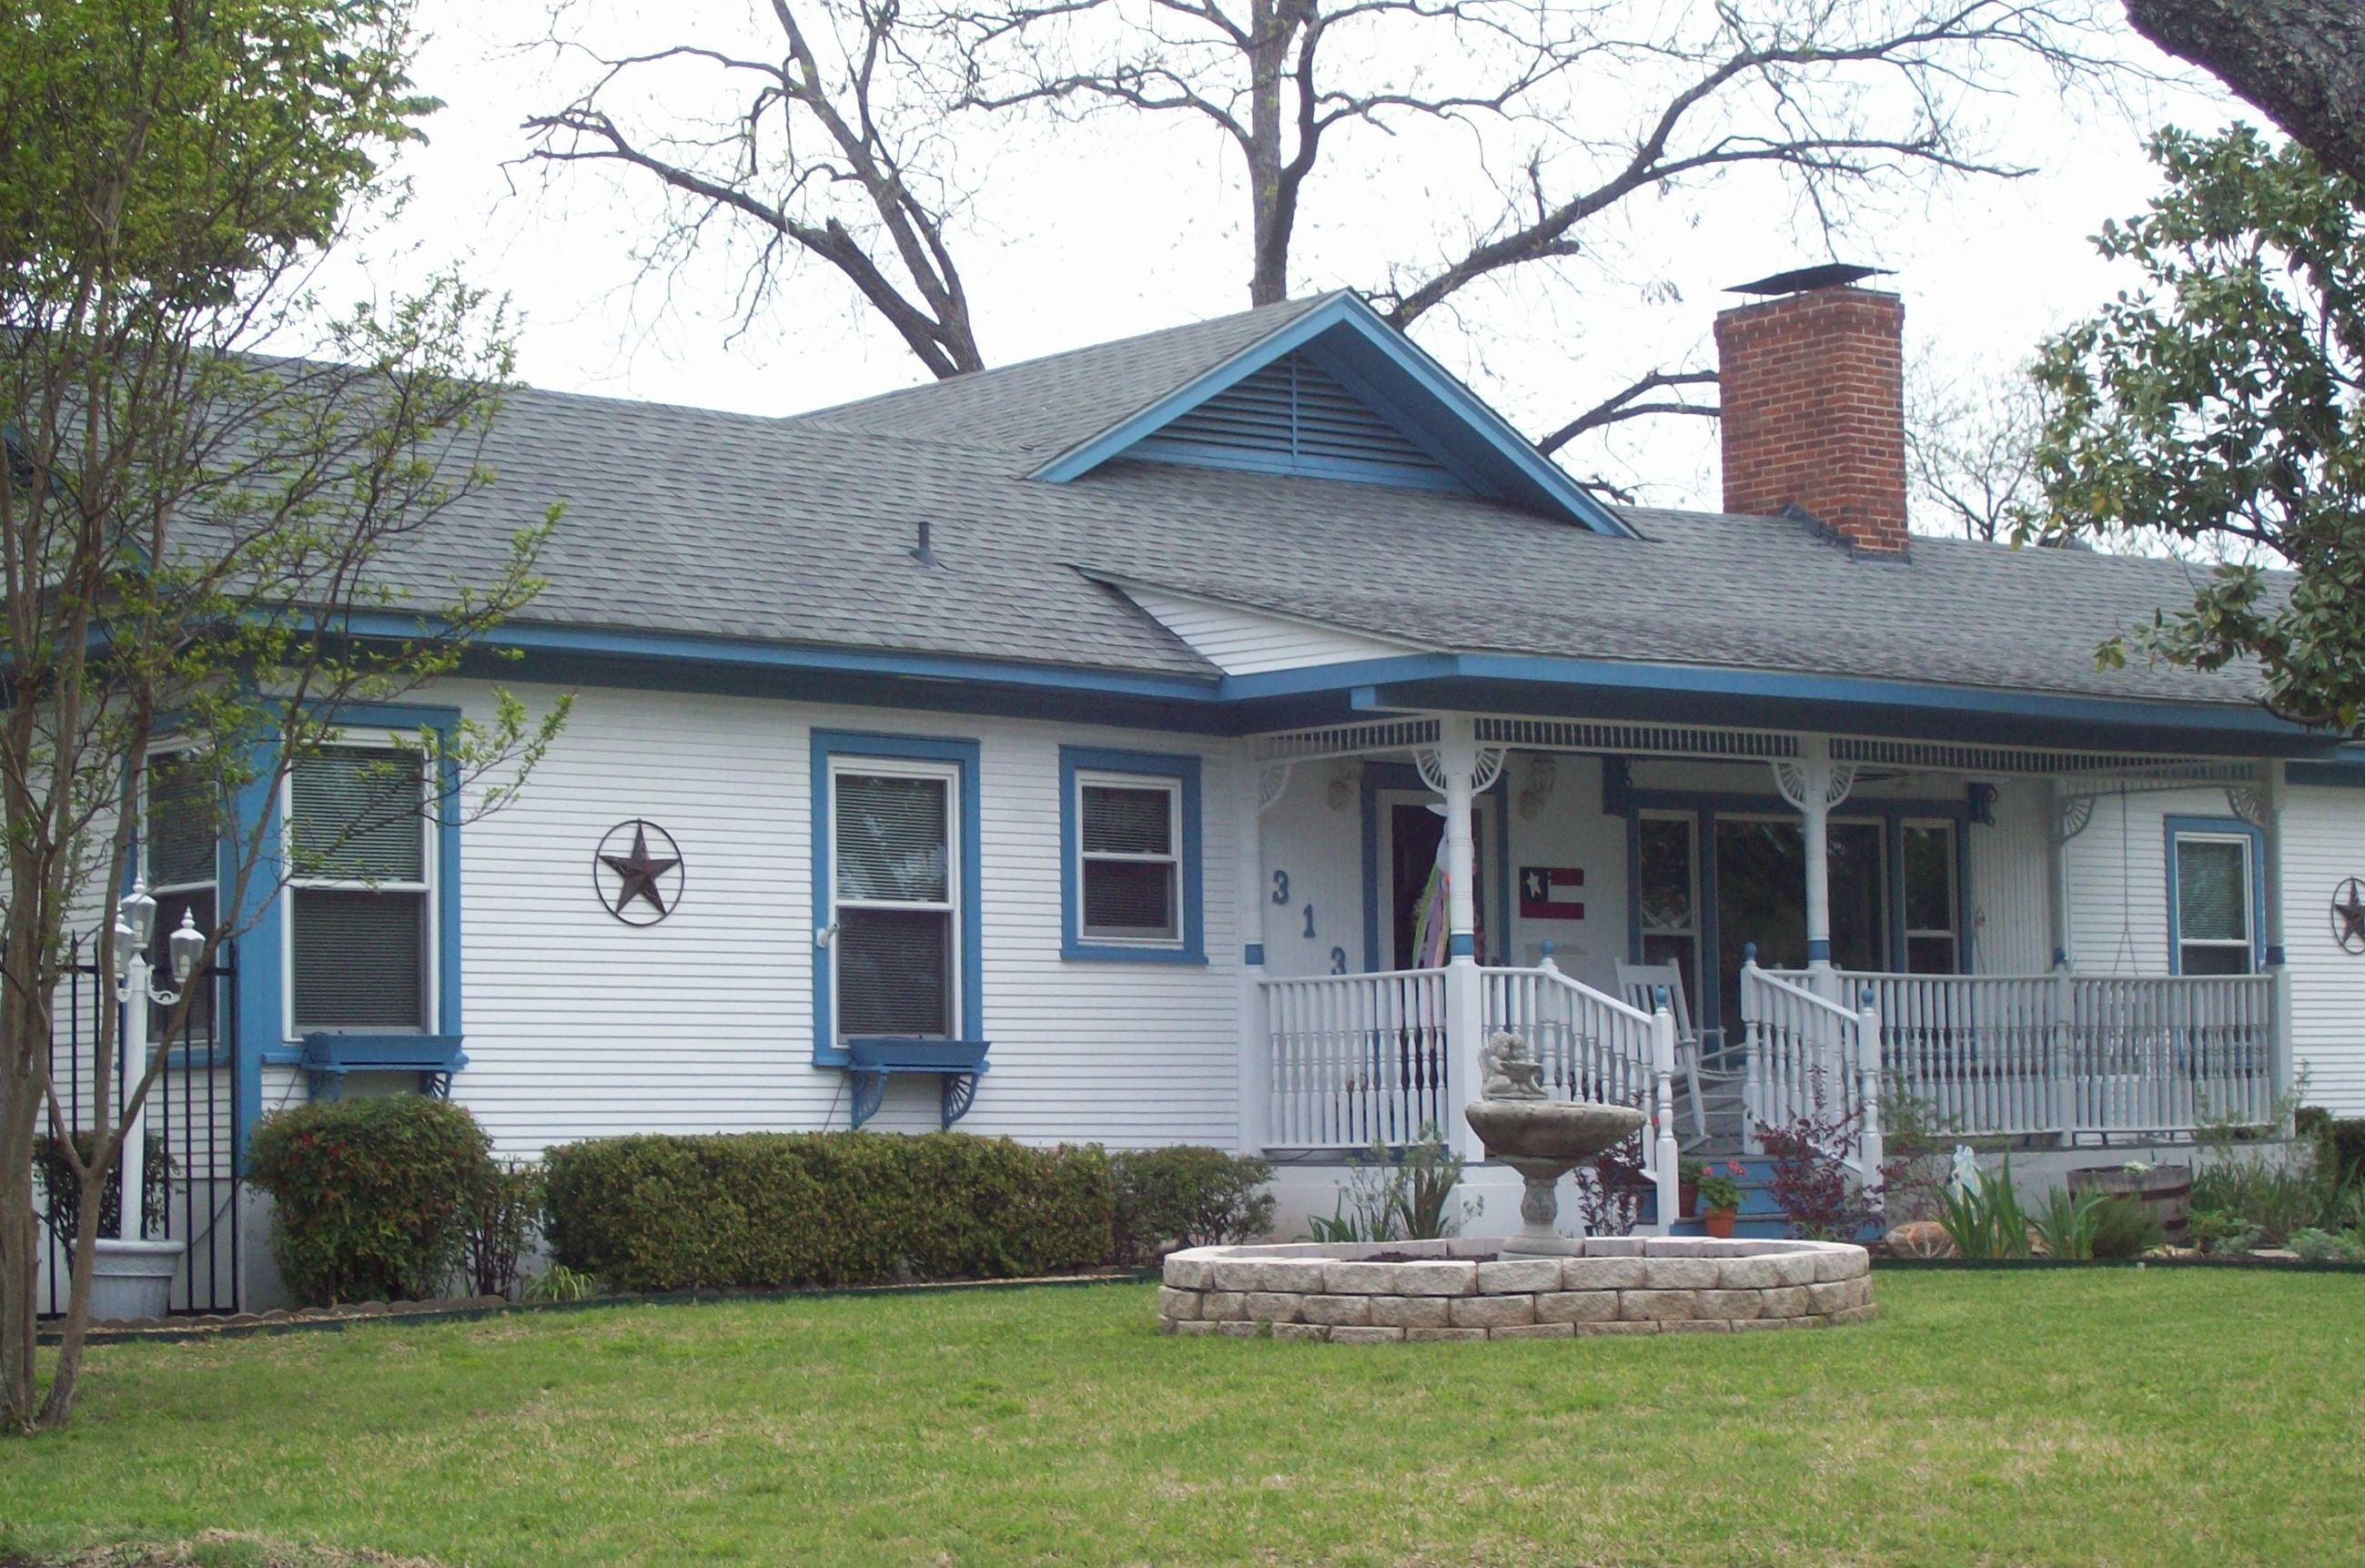 A white house with blue painted trim.